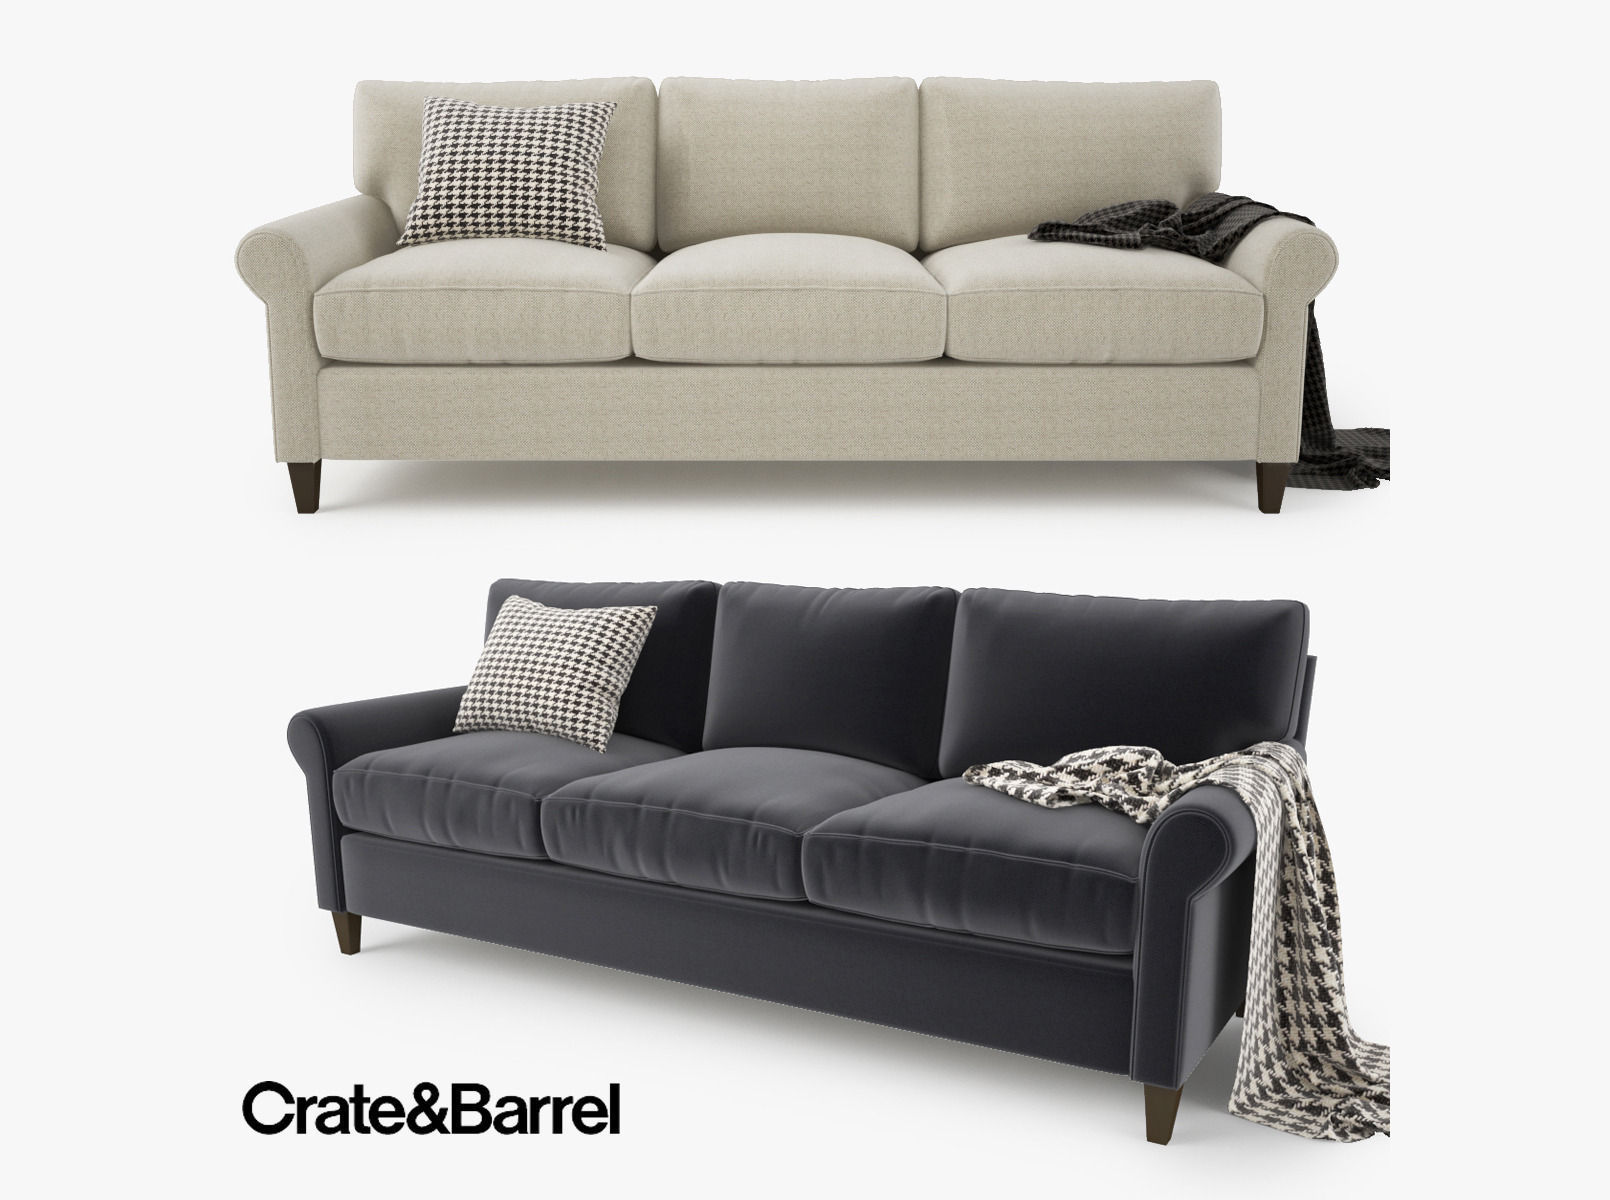 crate and barrel lounge sofa review the best covers sofas ii grey couch reviews ...